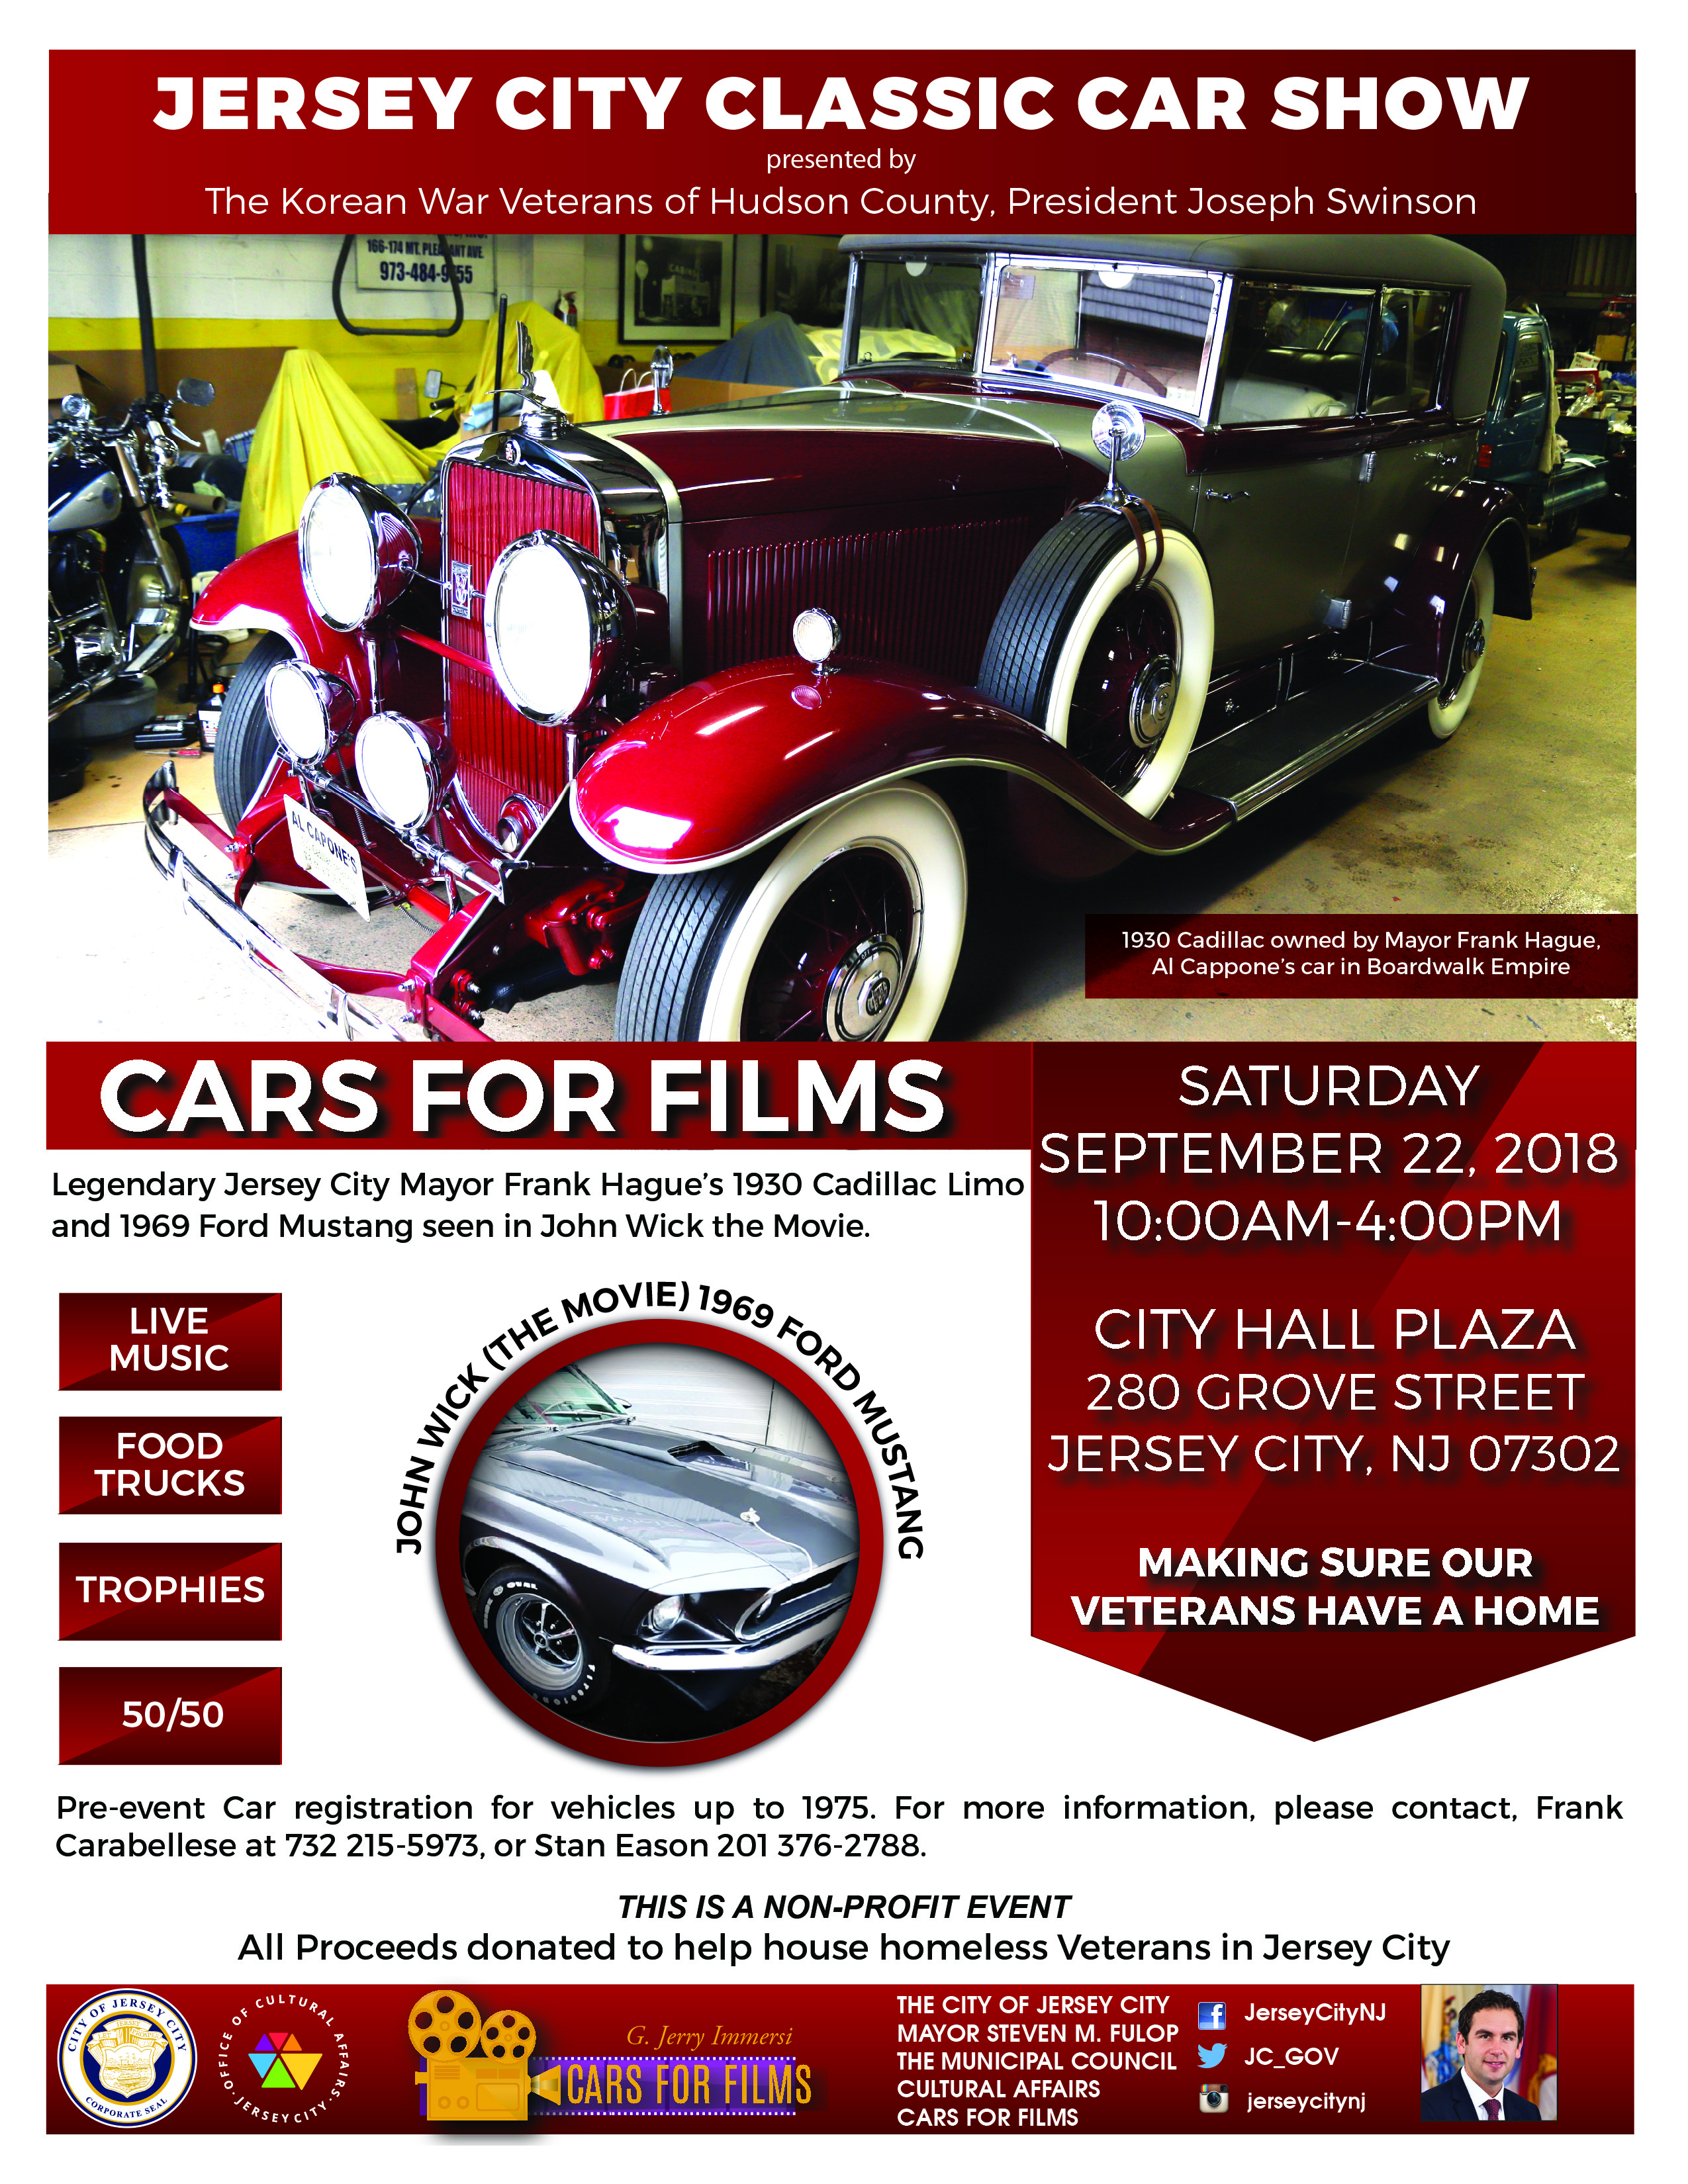 Jersey City Classic Car Show The Office Of Cultural Affairs - Antique car show near me today